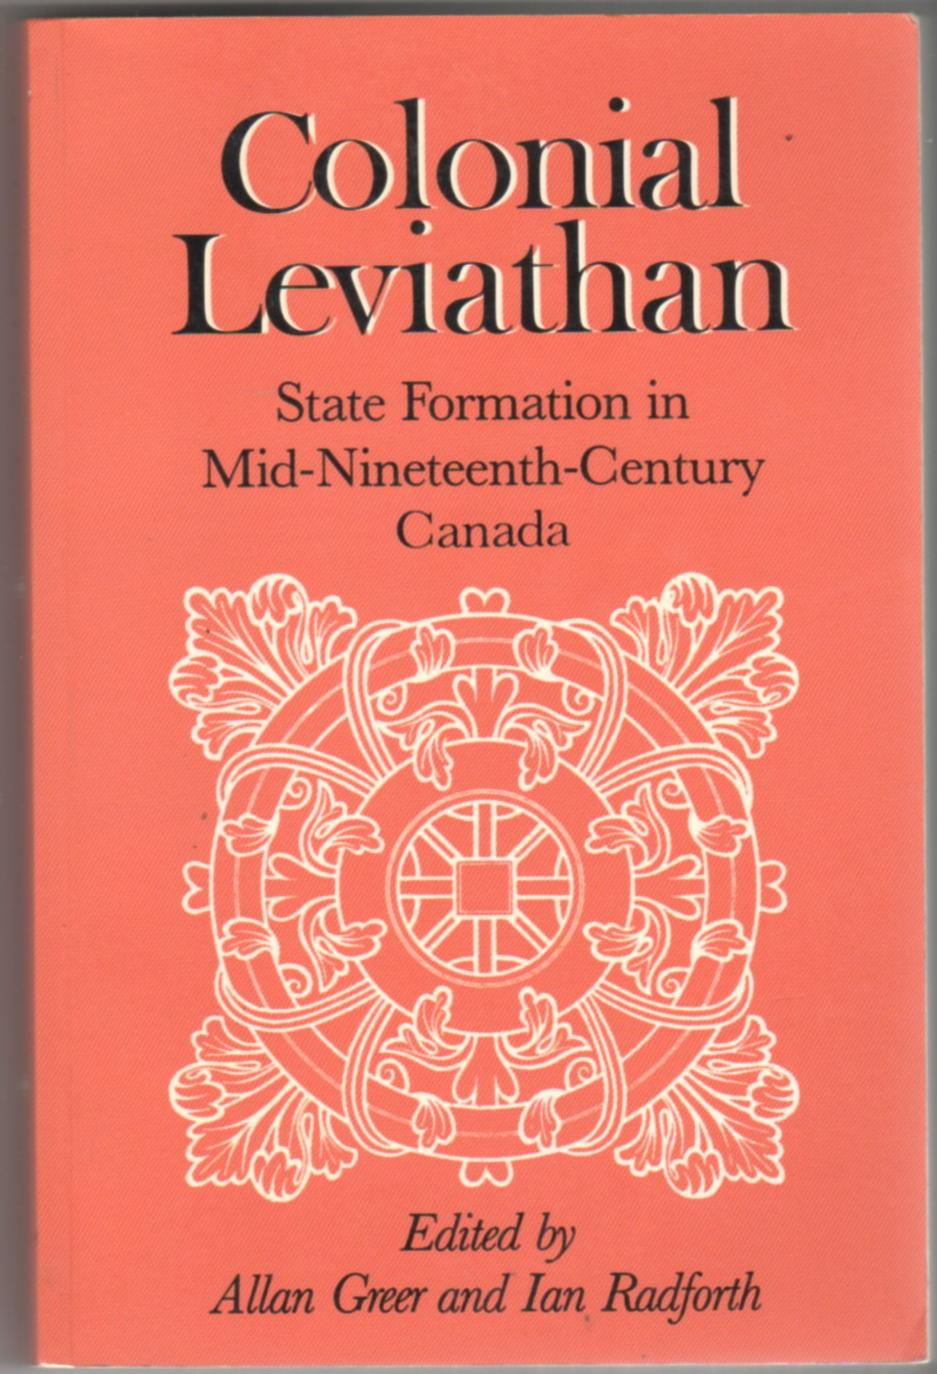 Image for Colonial Leviathan: State Formation in Mid-Nineteenth Century Canada